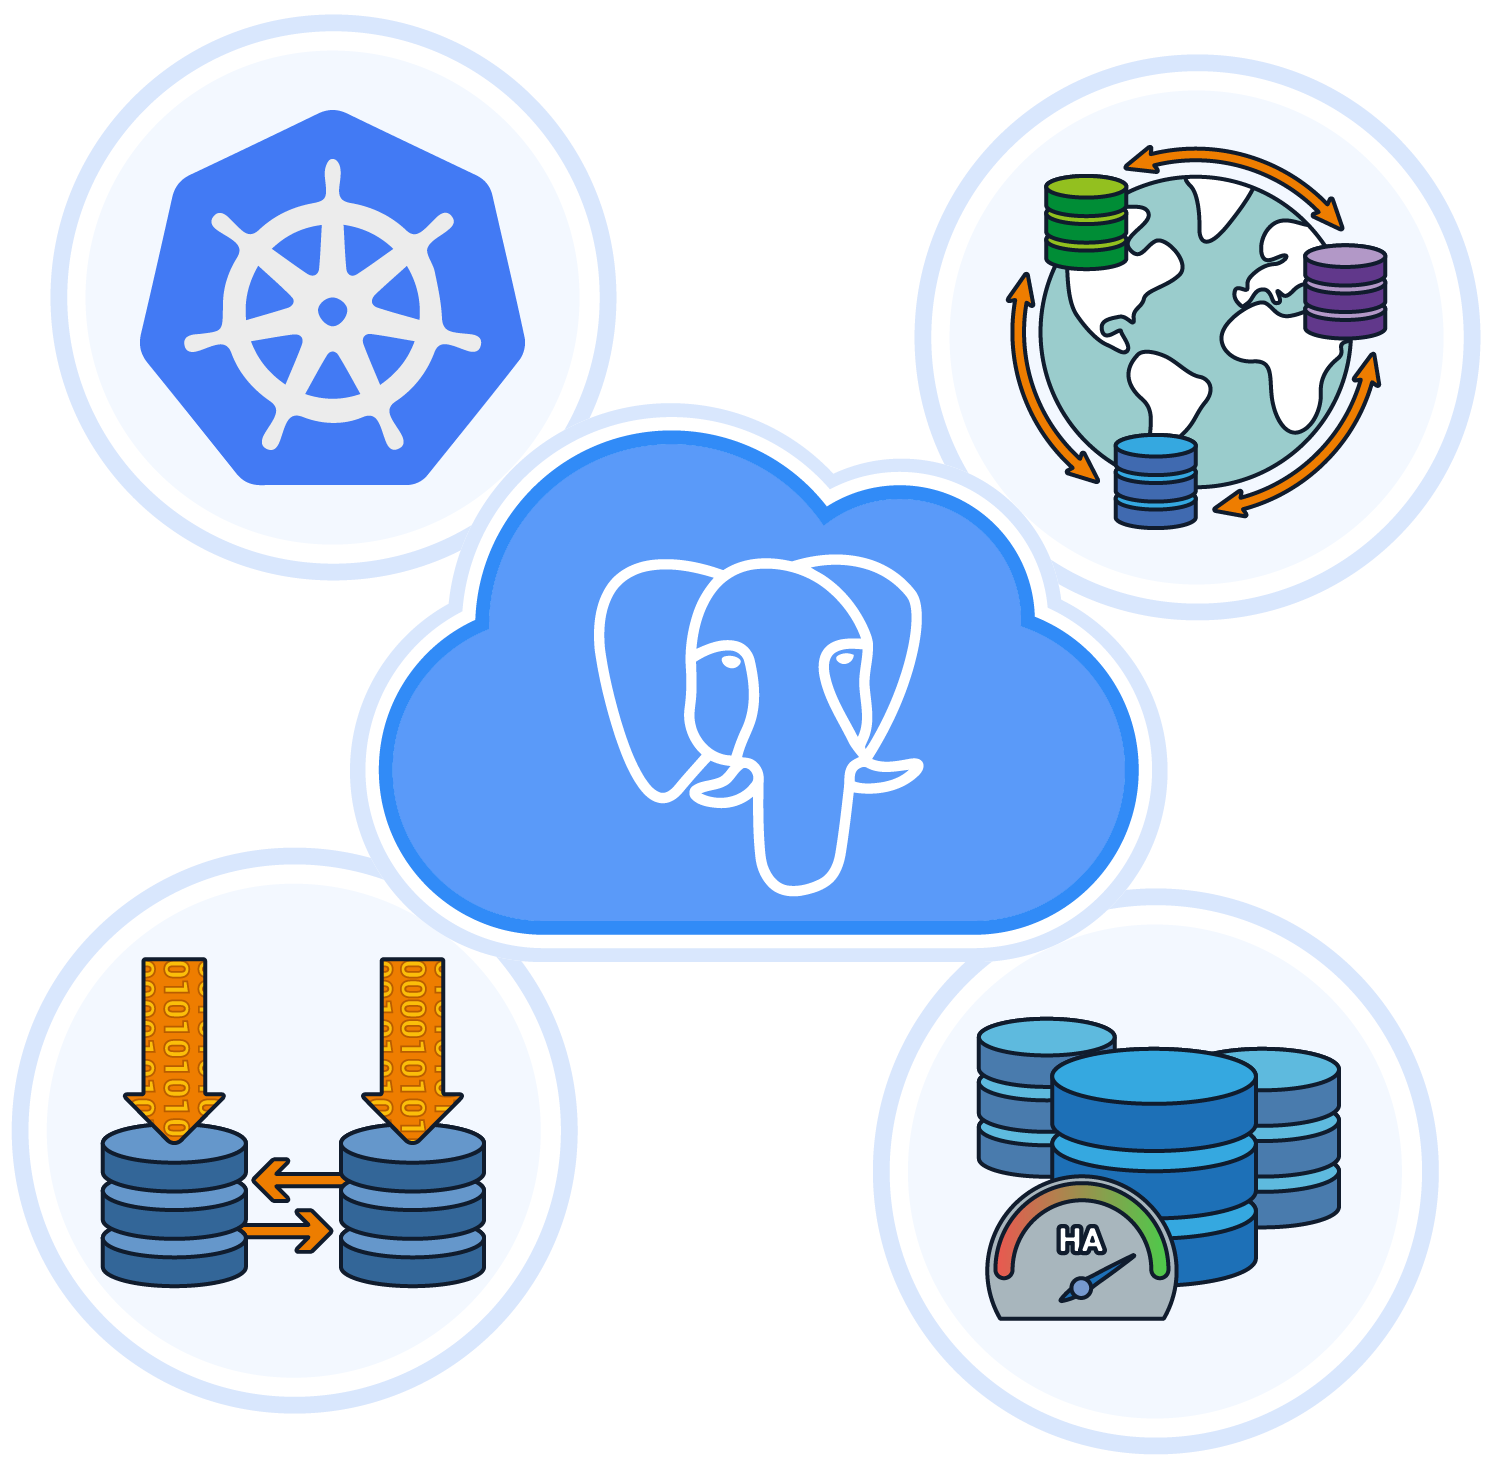 Cloud Native BDR Quickstart comes with database lifecycle management using Kubernetes Operators as well as services like onboarding, consulting and training.